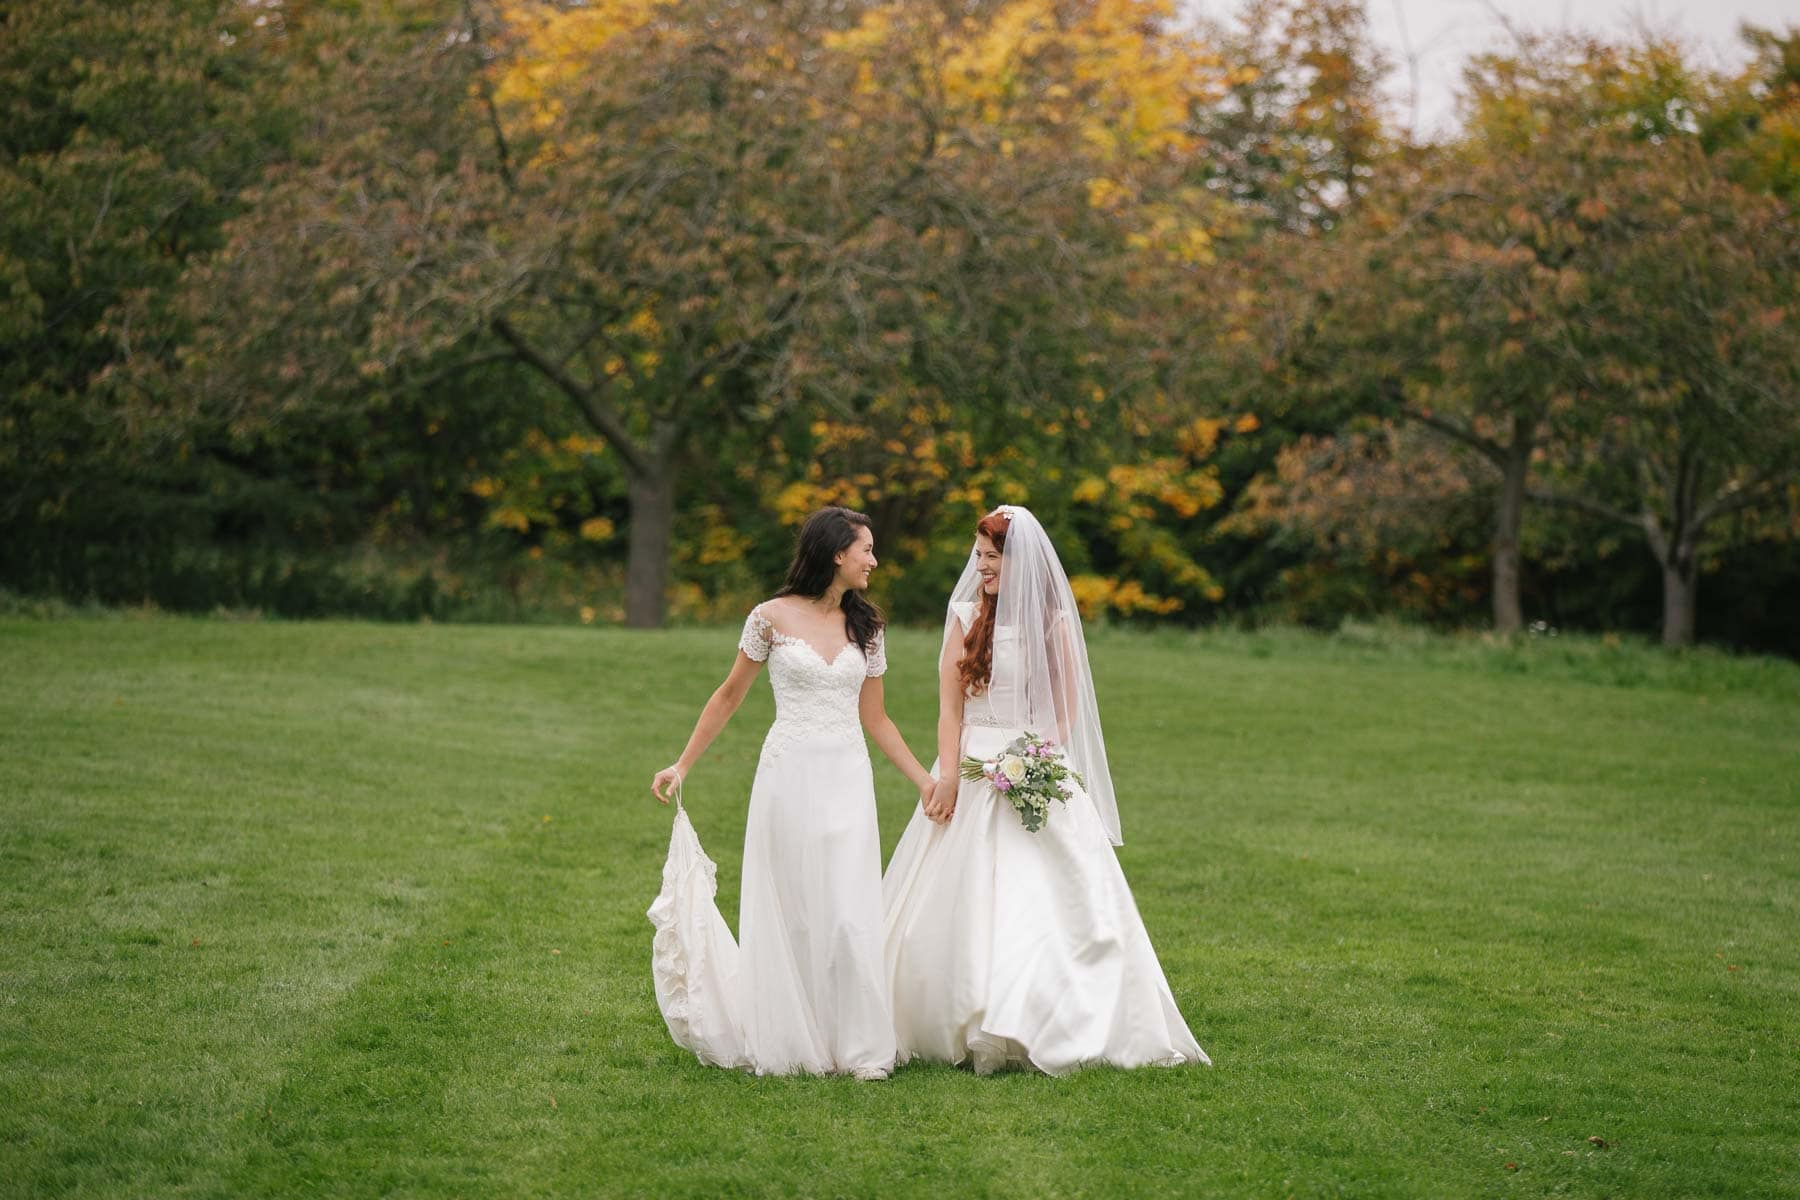 Lesbian brides walk across park in Brighton